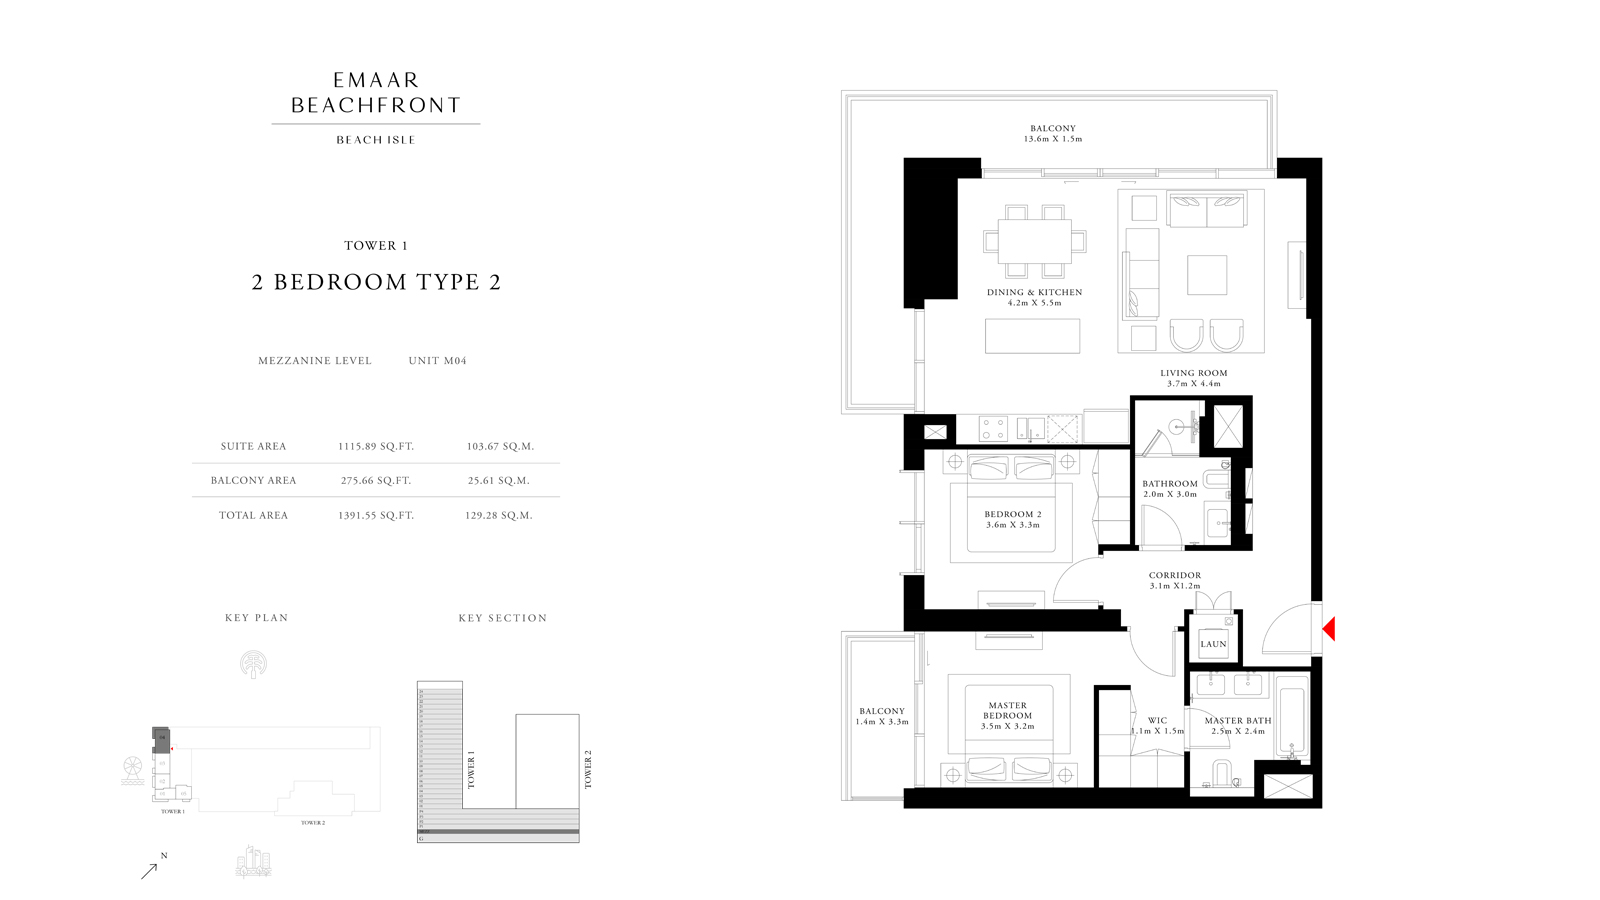 2 Bedroom Type 2 Tower 1, Size 1391 sq ft